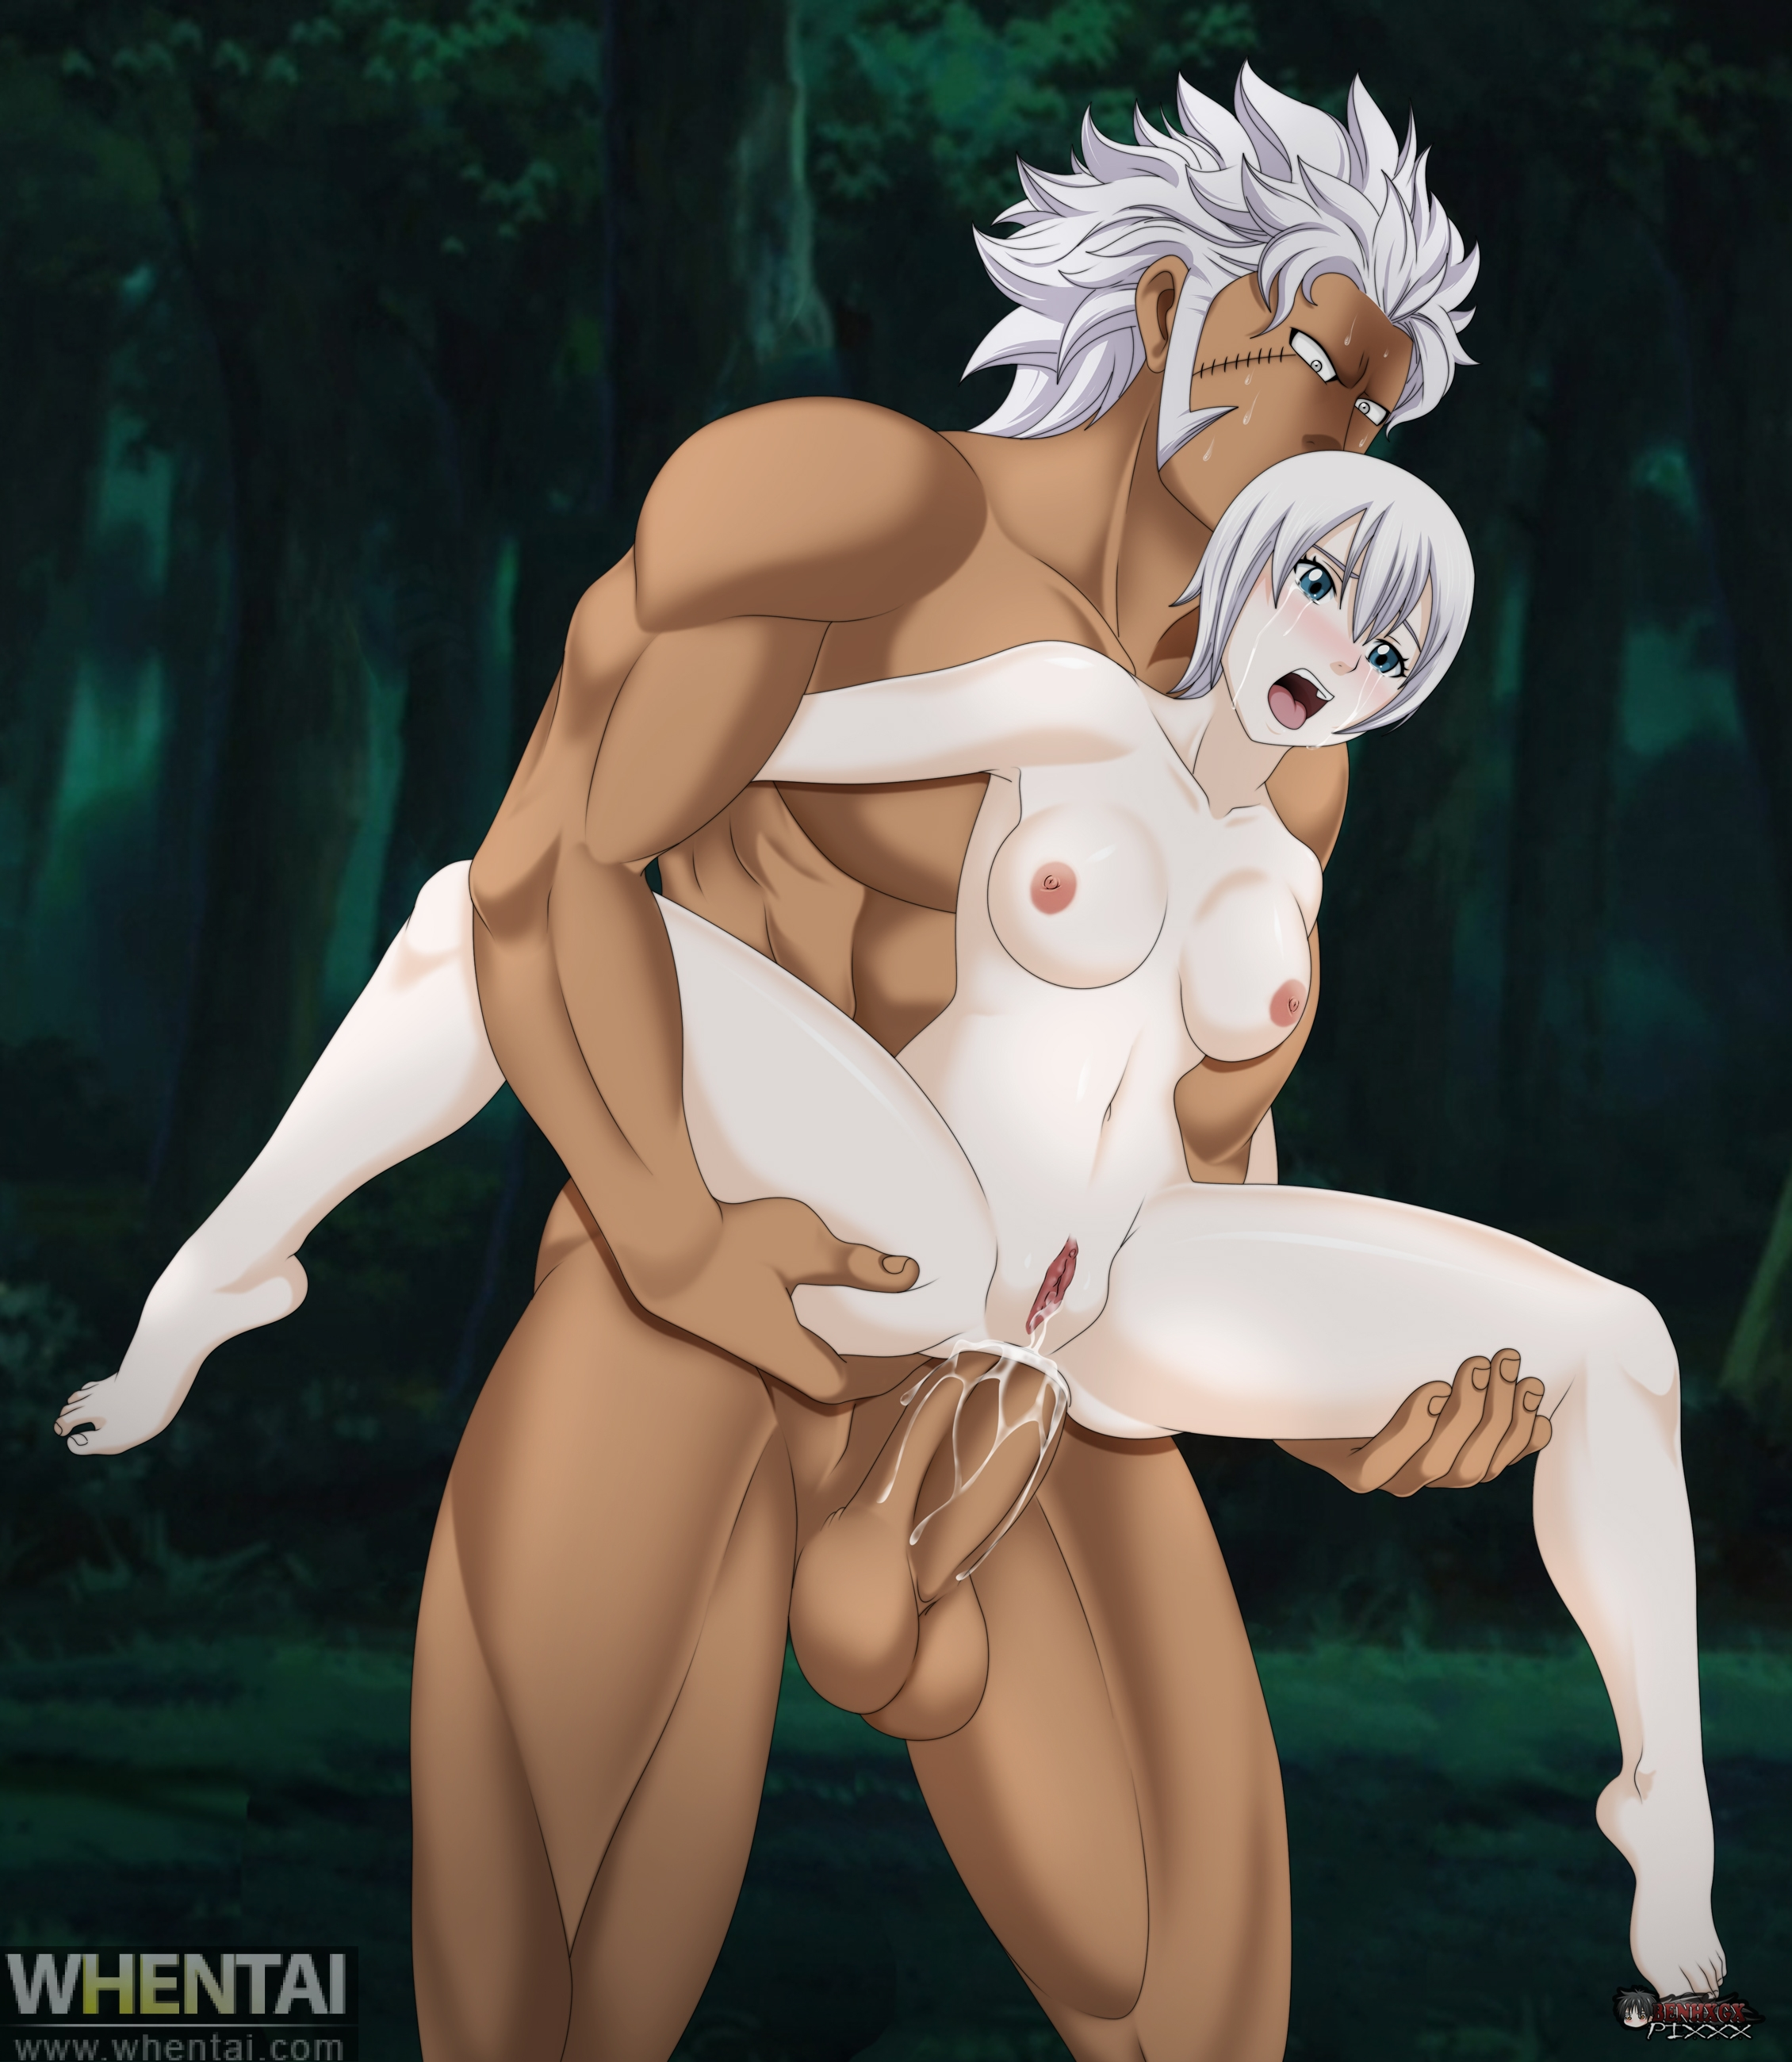 Giantess anime diane porn porn natural babes